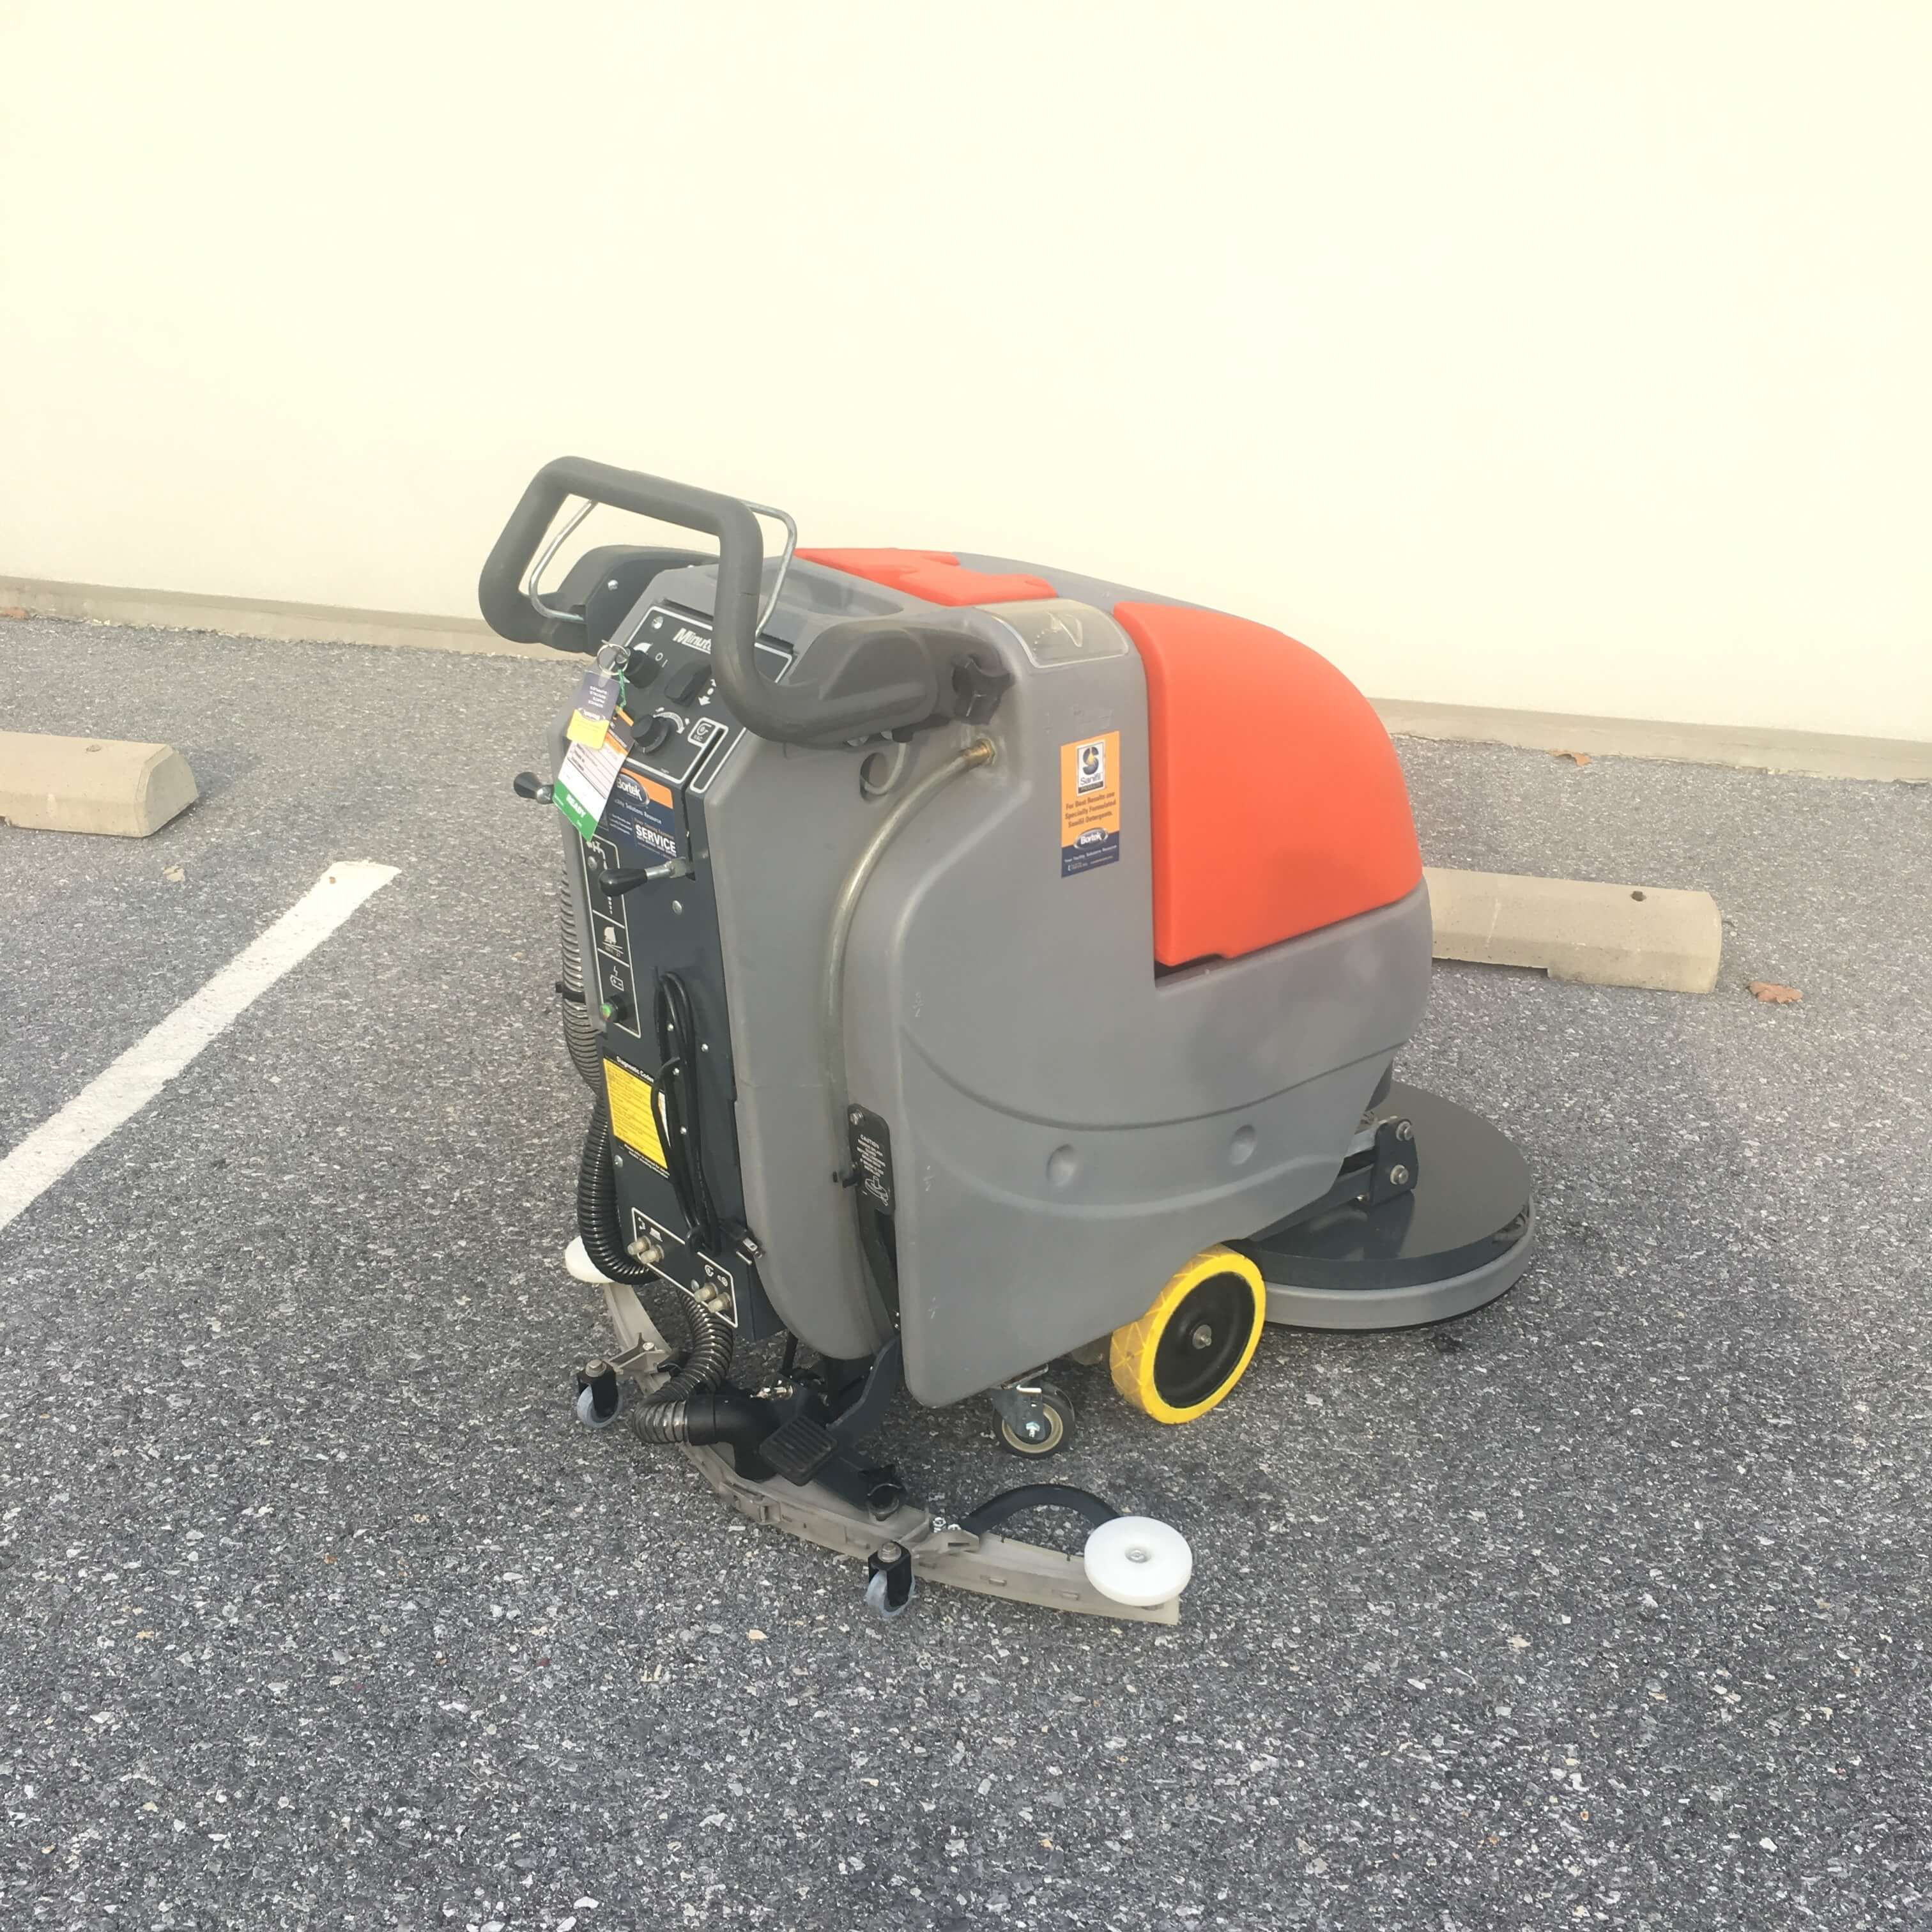 100 Floor Scrubbers Home Use Commercial Cleaning Equipment Floor Scrubbers  Home Use By Floor Scrubbers Georgia